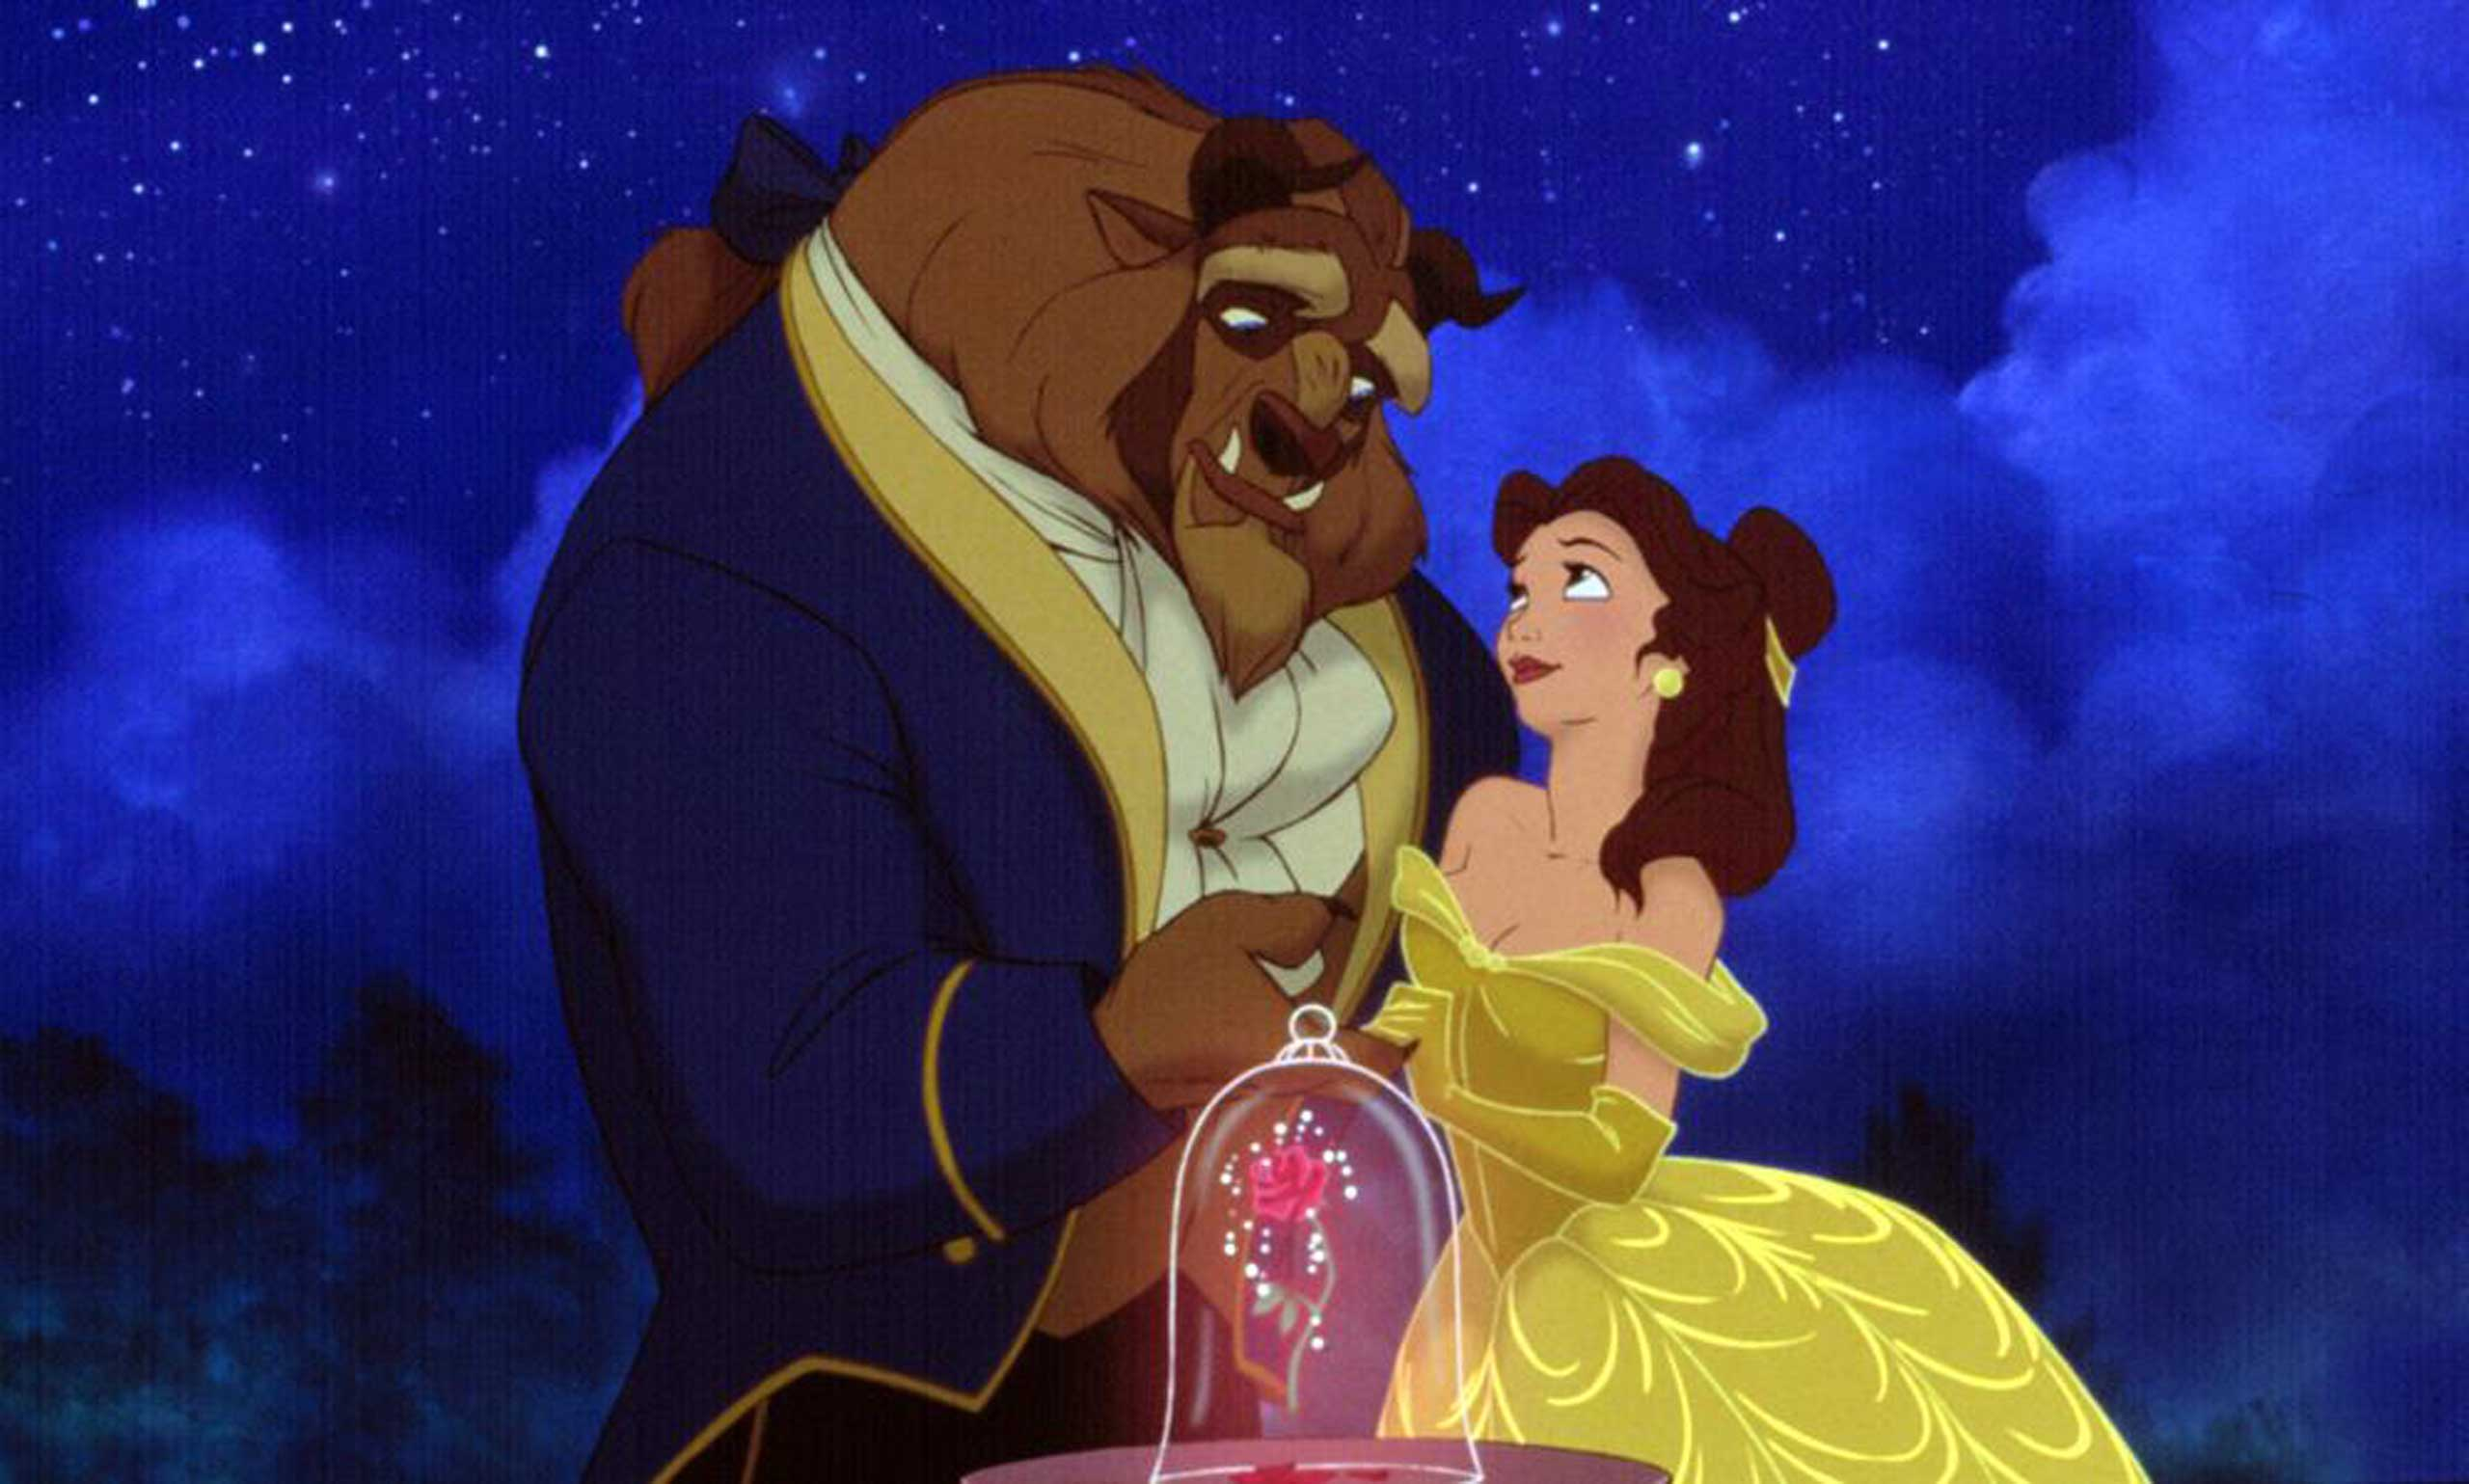 <strong>Beauty and the Beast - <i>Beauty and the Beast</i>, 1991</strong>